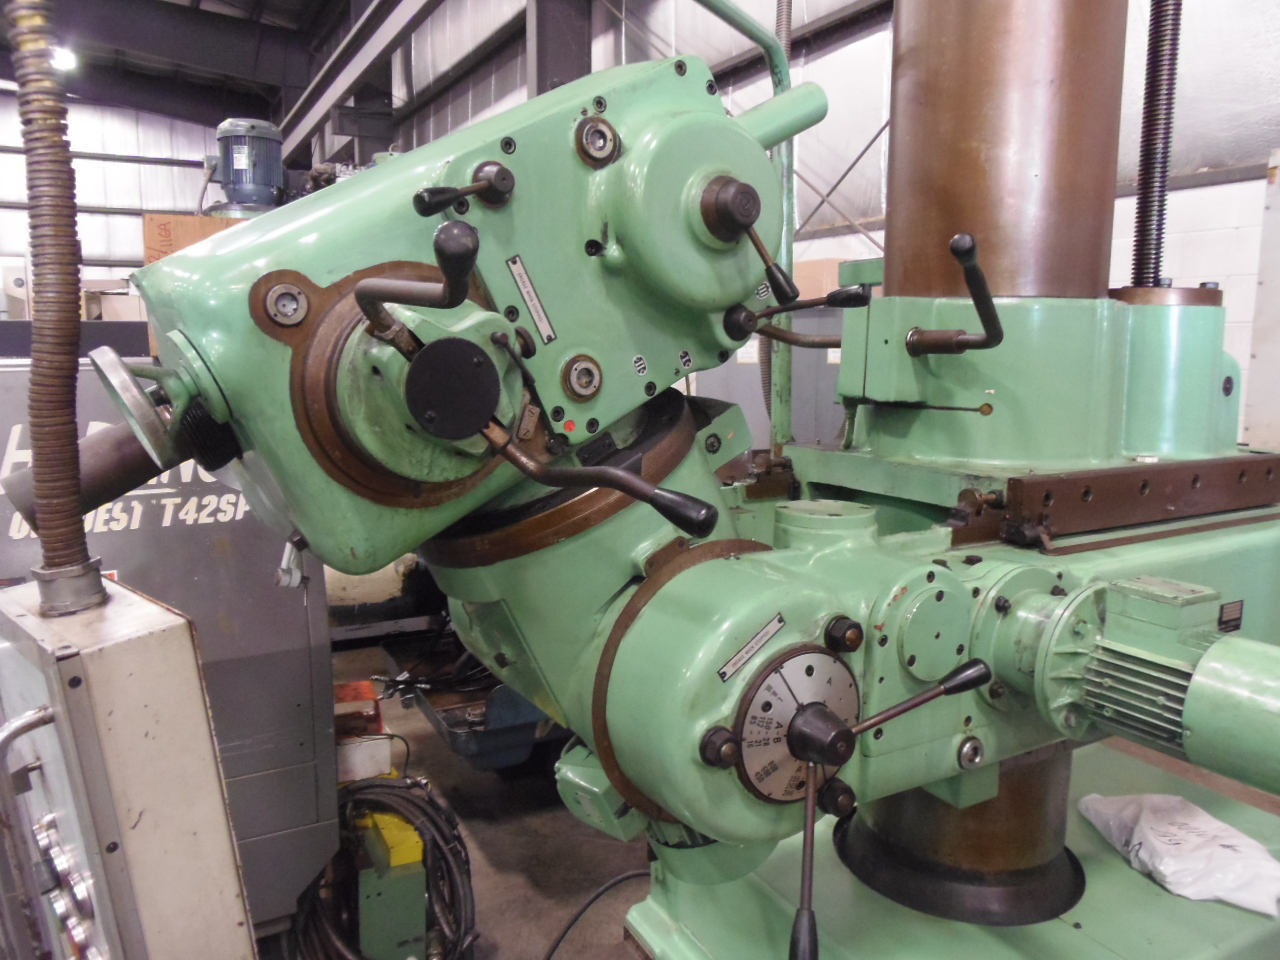 MAS VOM 50 PORTABLE RADIAL DRILLING MACHINE, MORSE 5 TAPER, 16-800 RPM, 360 DEGREE CROSSARM AND 360 DEGREE DRILLING HEAD ROTATION, SWIVEL, 1991